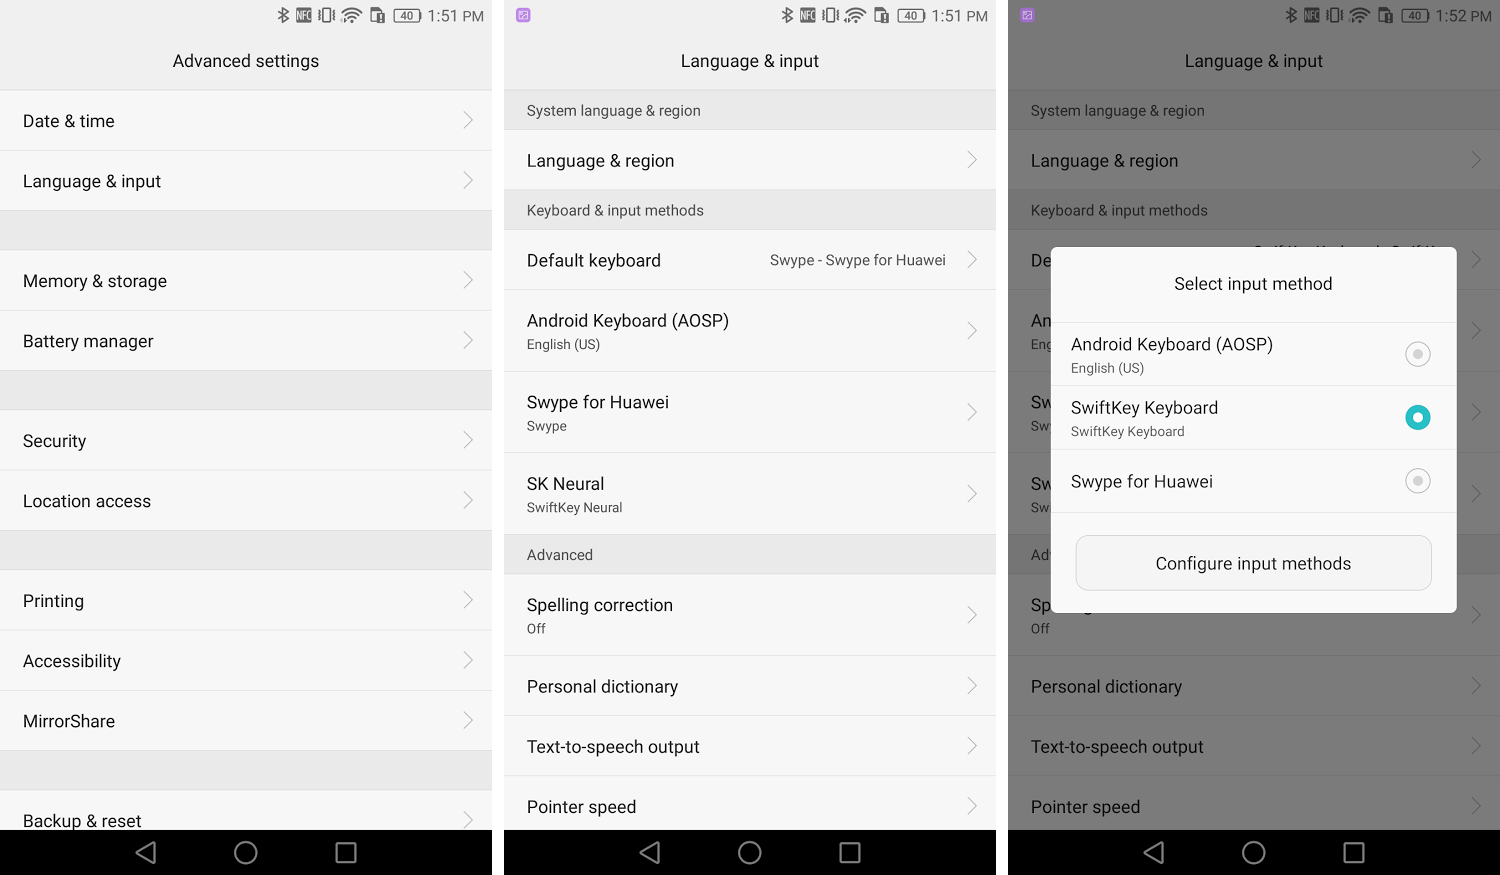 How to change the keyboard on the Huawei Mate 8 - Huawei Mate 8